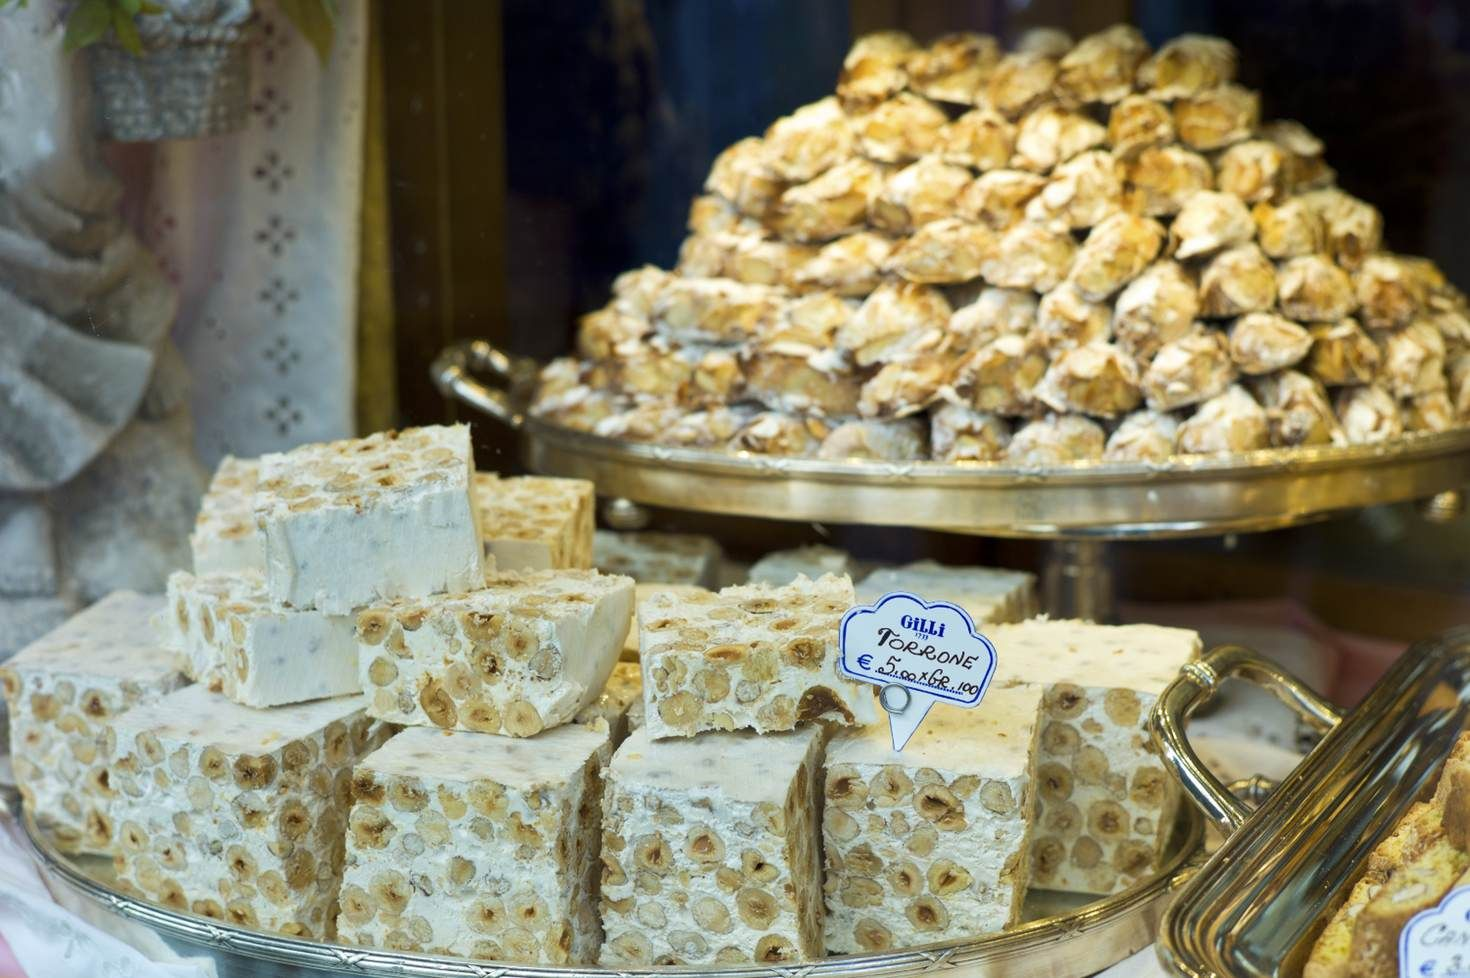 Delicious torrone on display in Caffe Gilli #Italy @LonelyPlanet